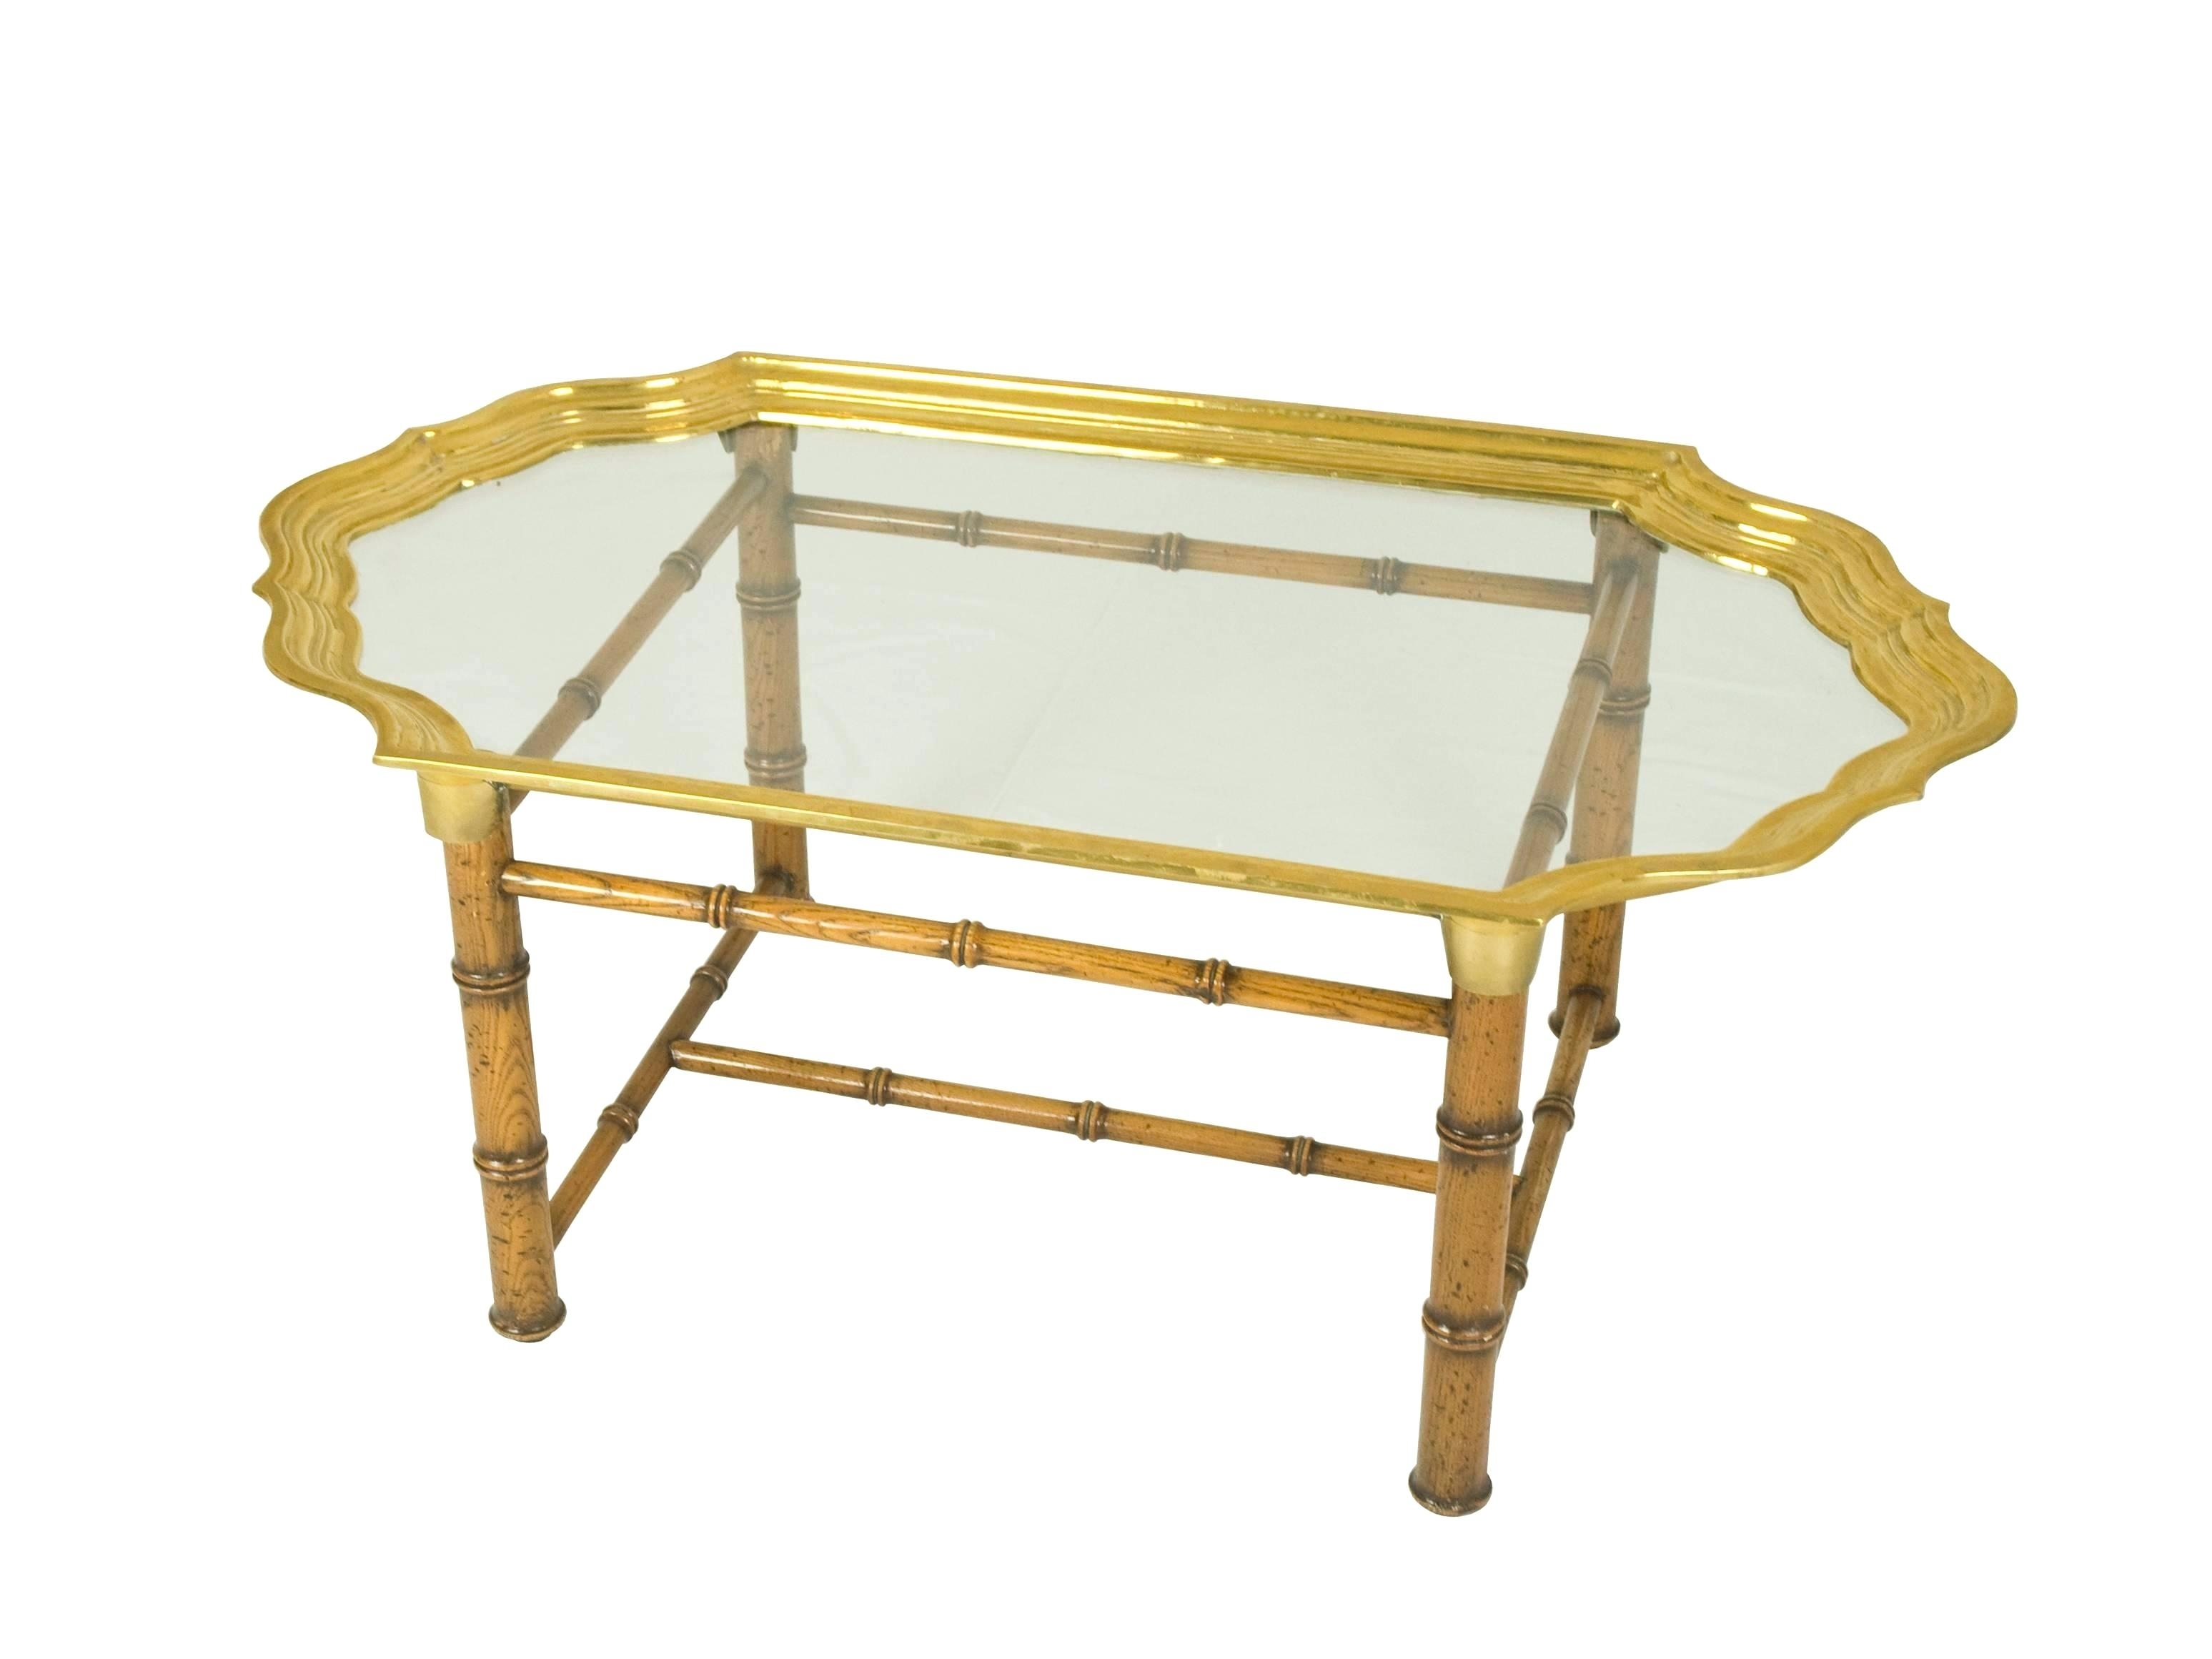 Brass And Wood Coffee Table Antique Brass And Wood Nailhead Inlay within Joni Brass and Wood Coffee Tables (Image 3 of 30)